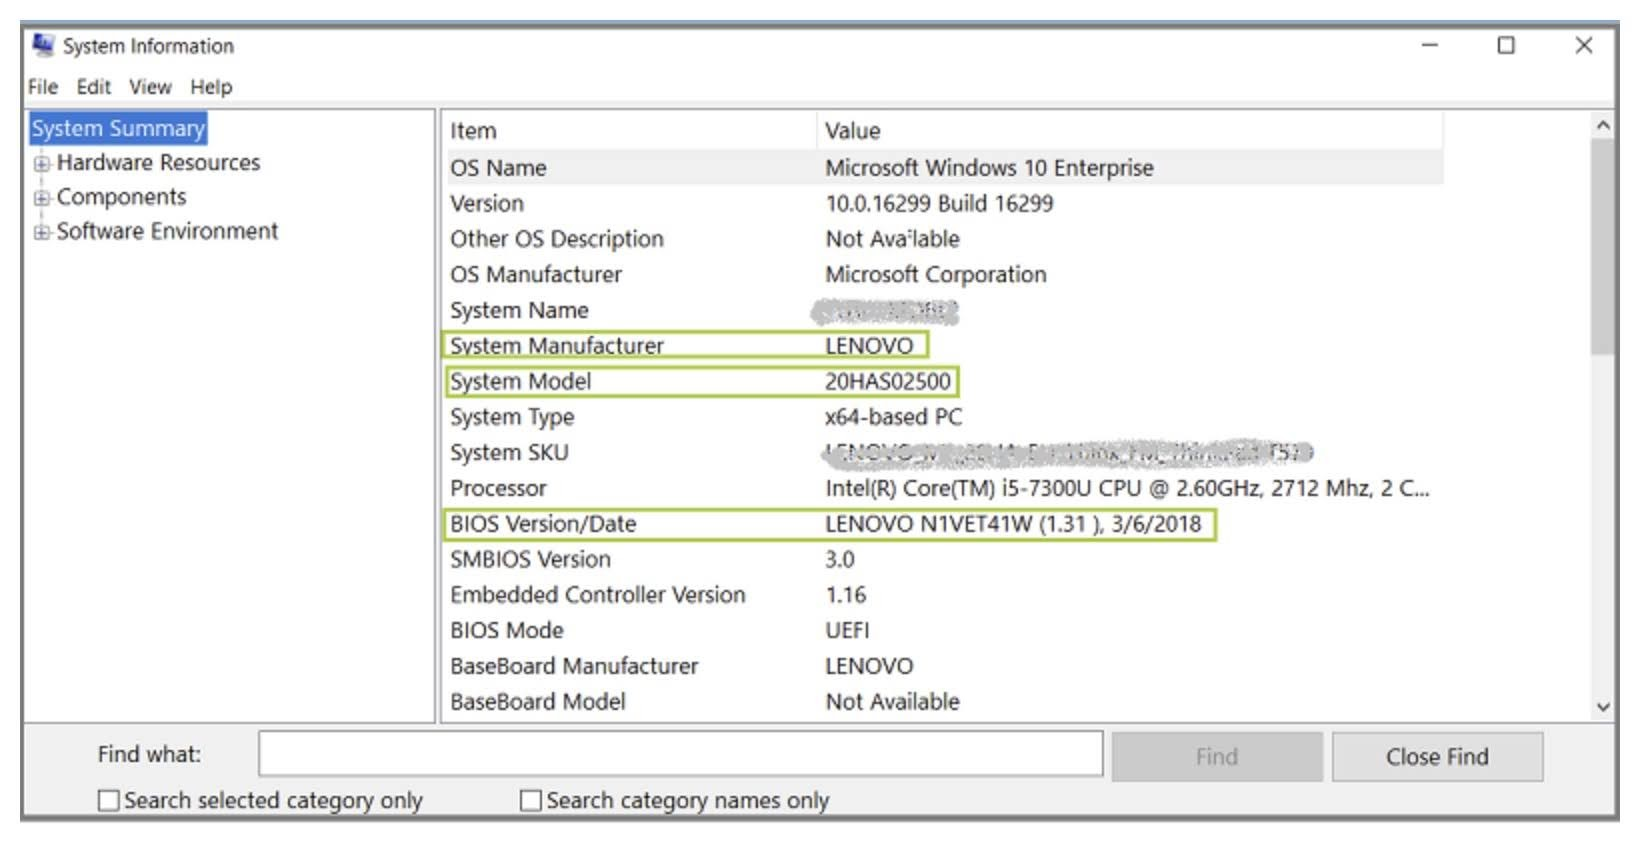 You'll find the motherboard manufacturer, model, and BIOS version under the System Summary section.